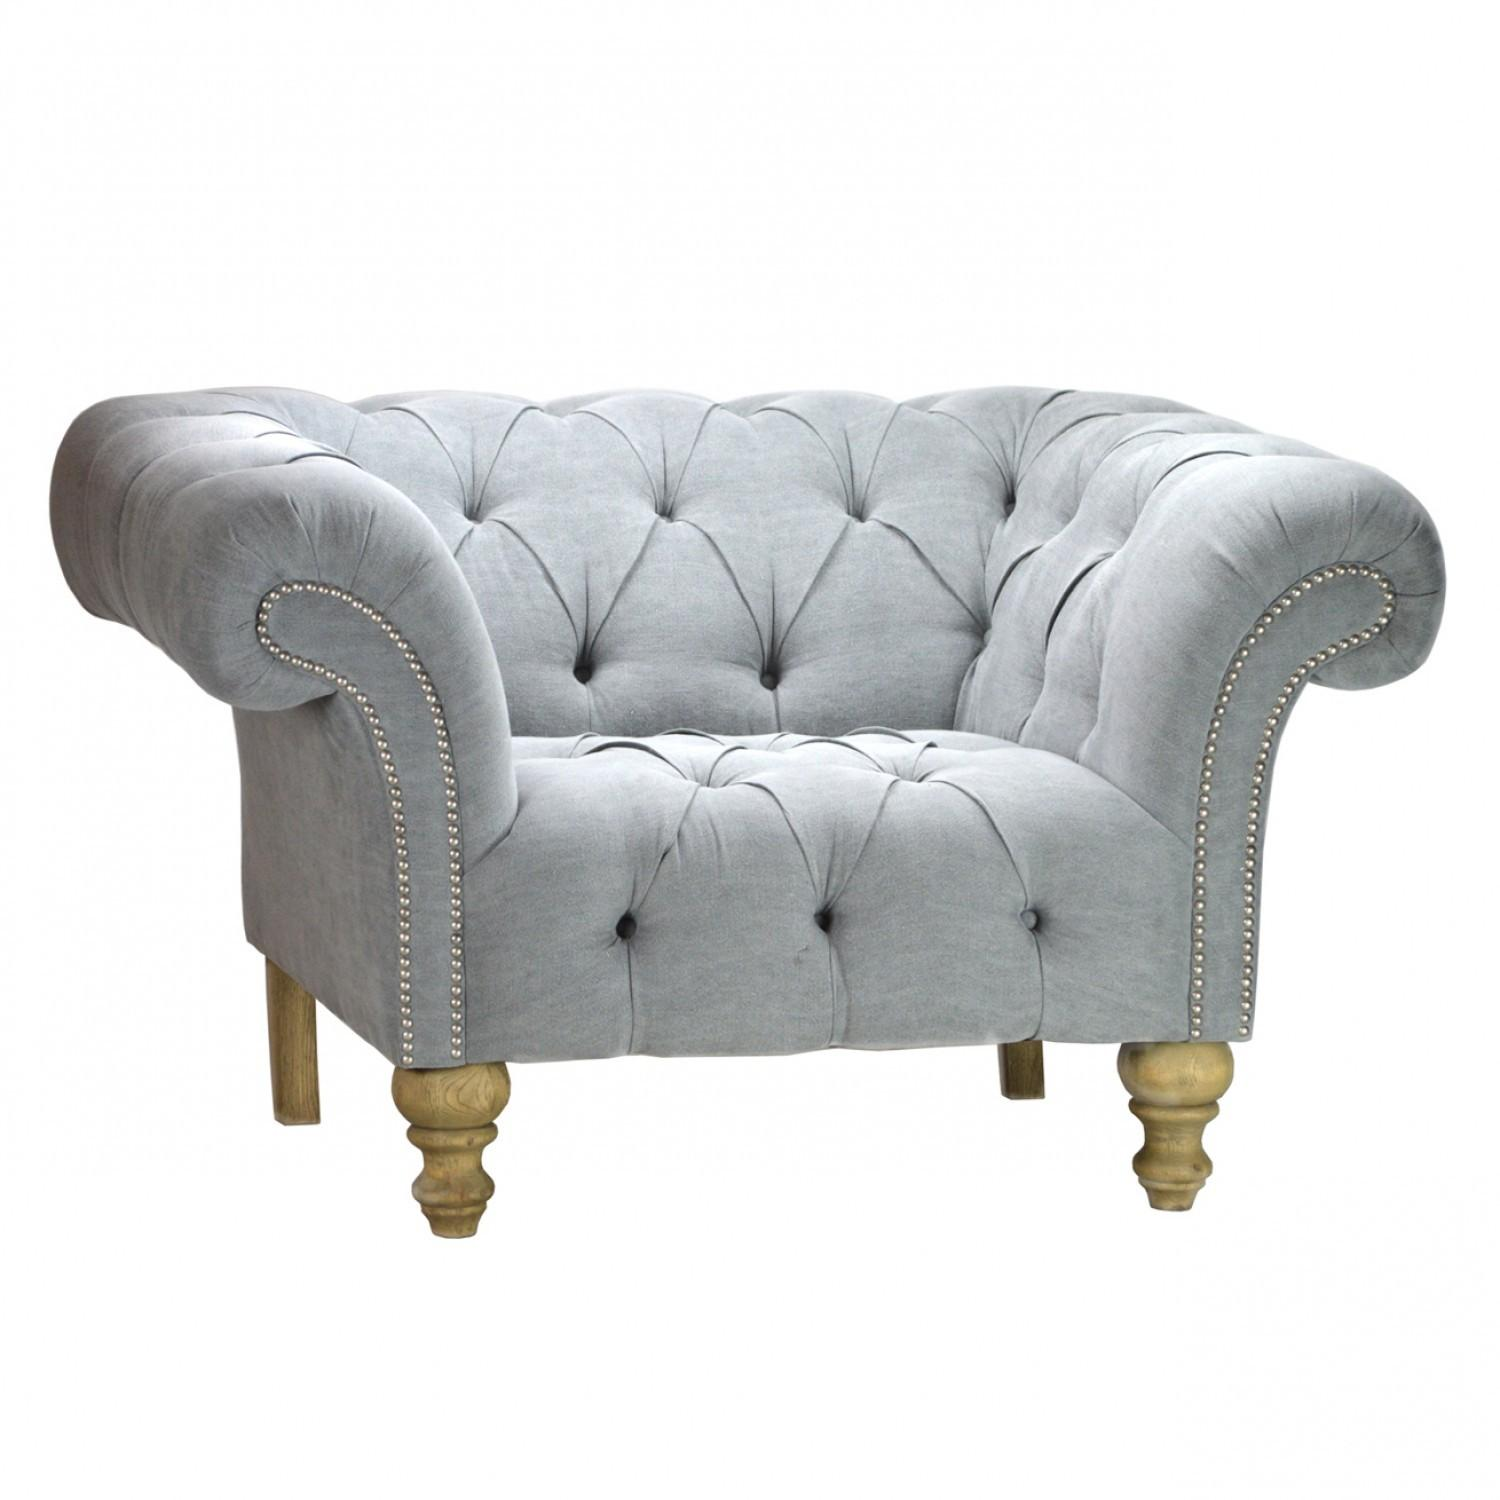 Furniture Luxurious Tufted Chesterfield Sofa Living